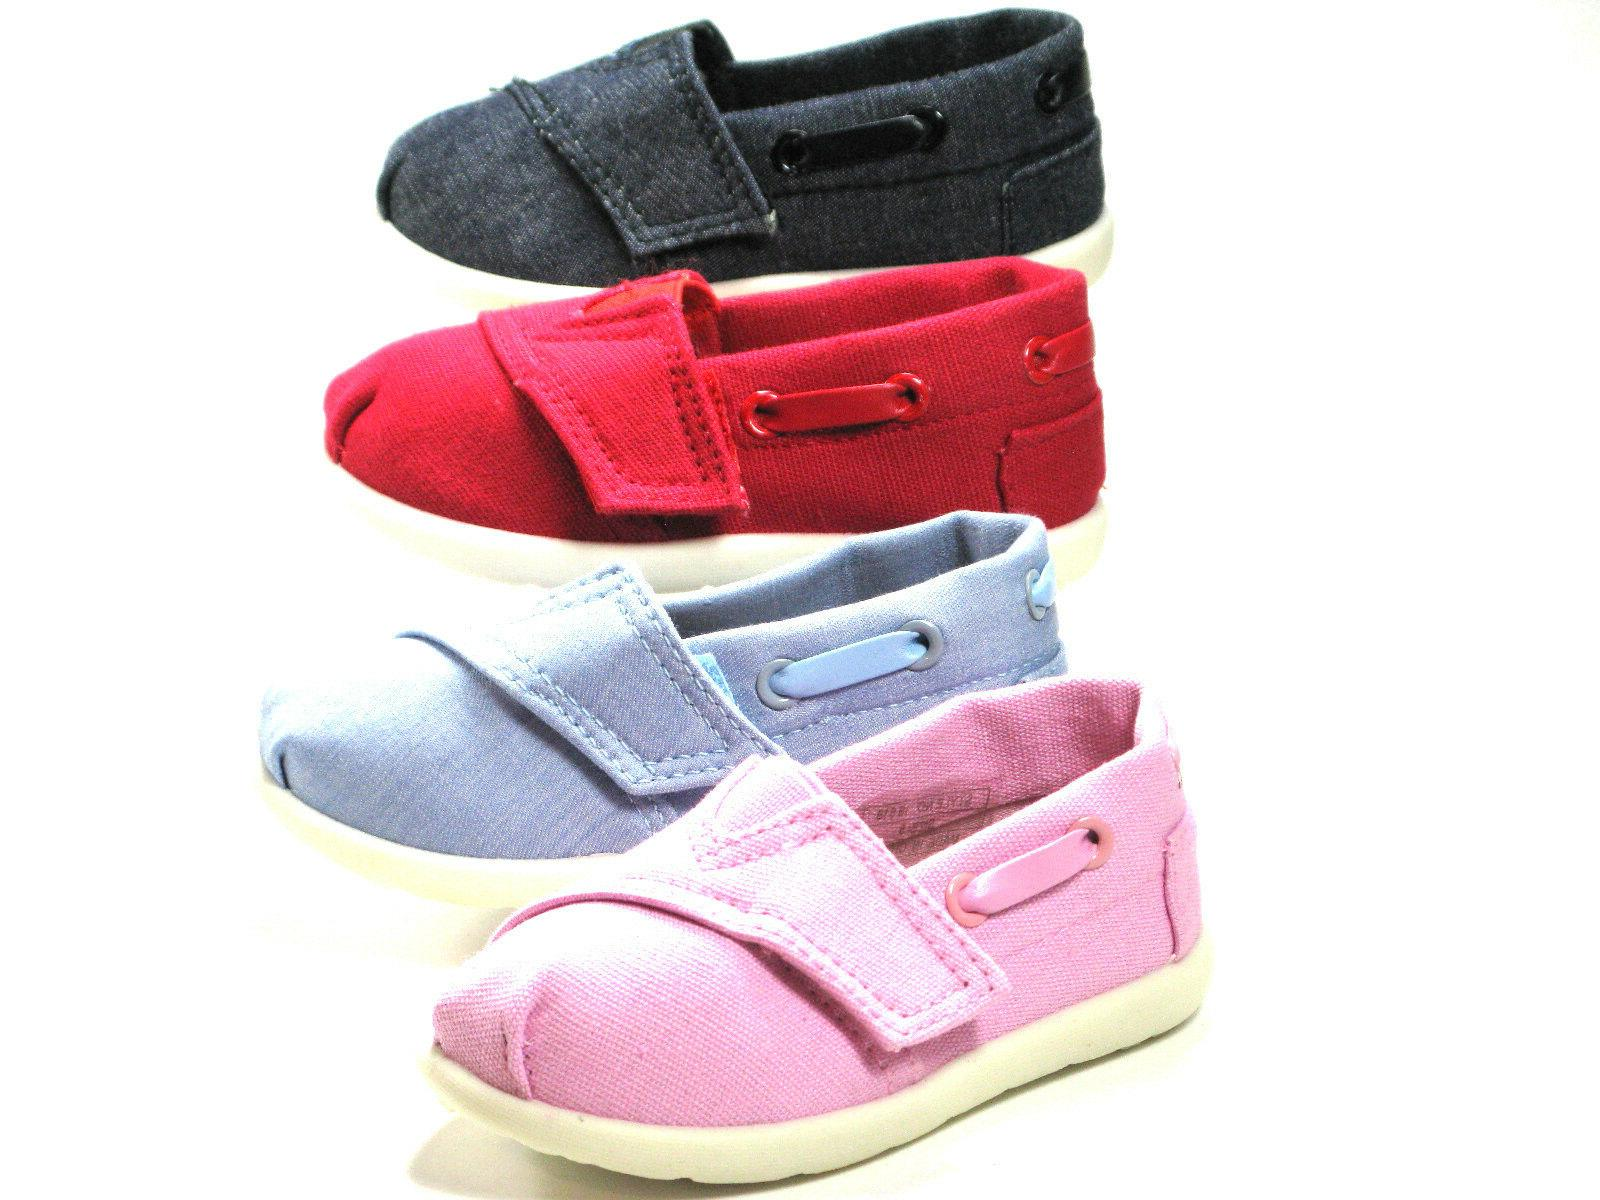 New Oxford Baby Boys Shoes Size 4 5 6 7 9